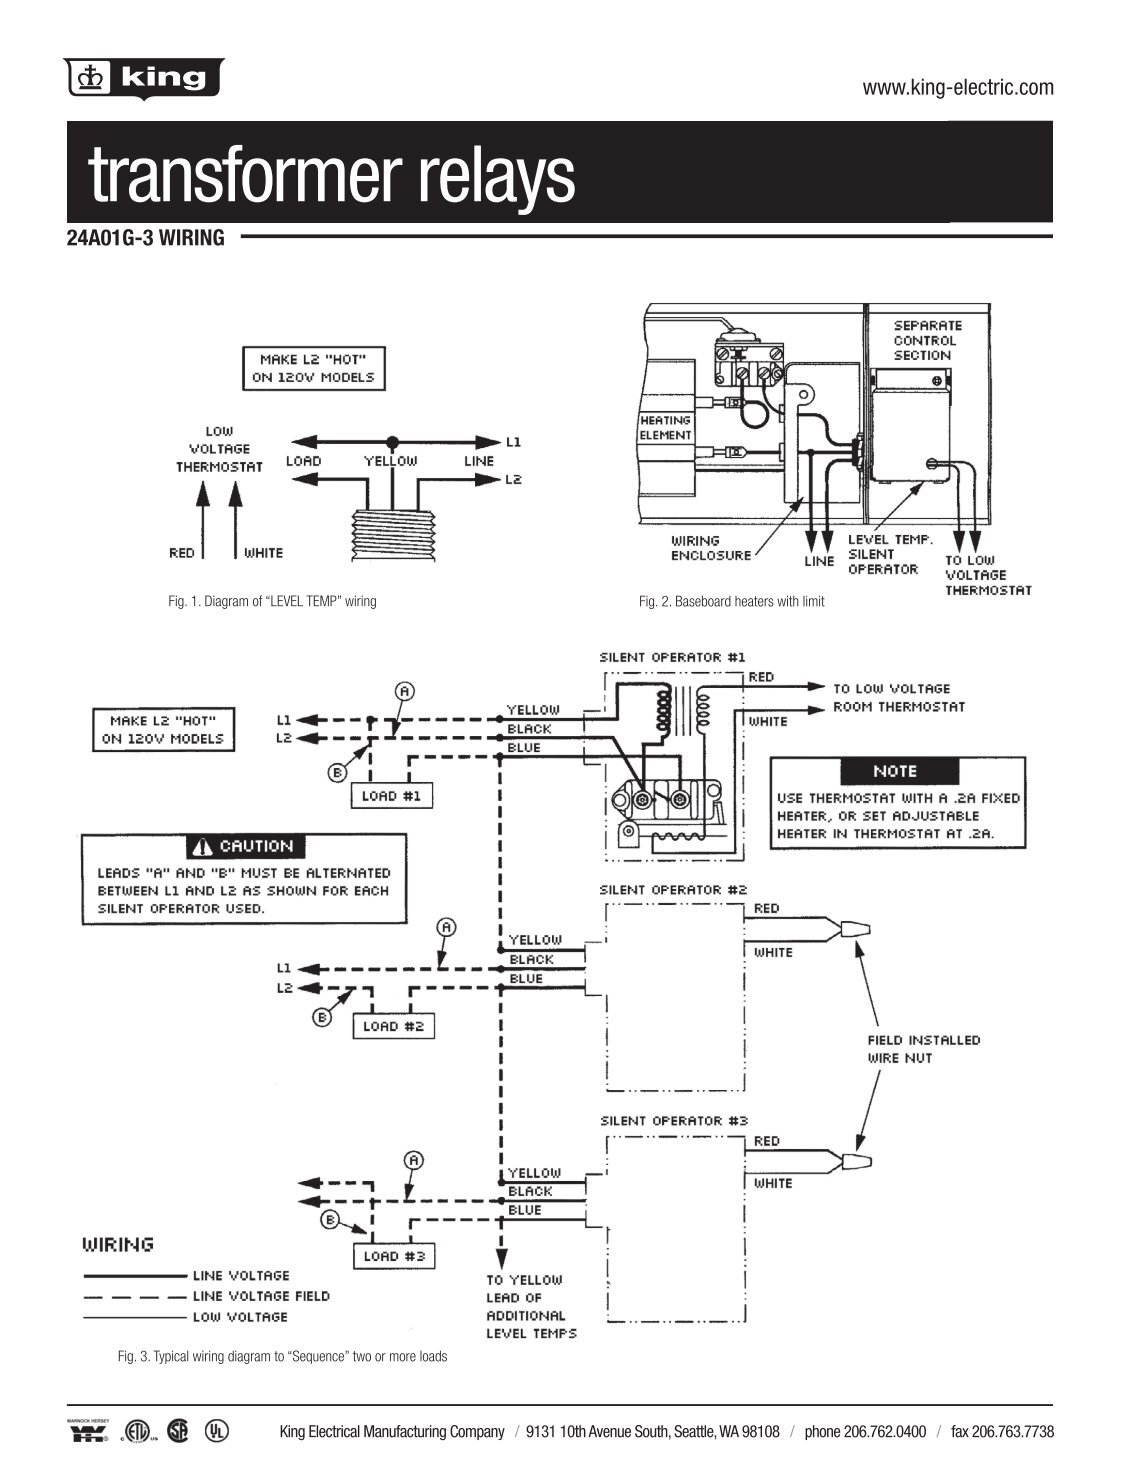 King Thermostat Wiring Diagram Source Two Stage Heat Pump Electric Furnace Rh Cleanprosperity Co 2 Honeywell Problems